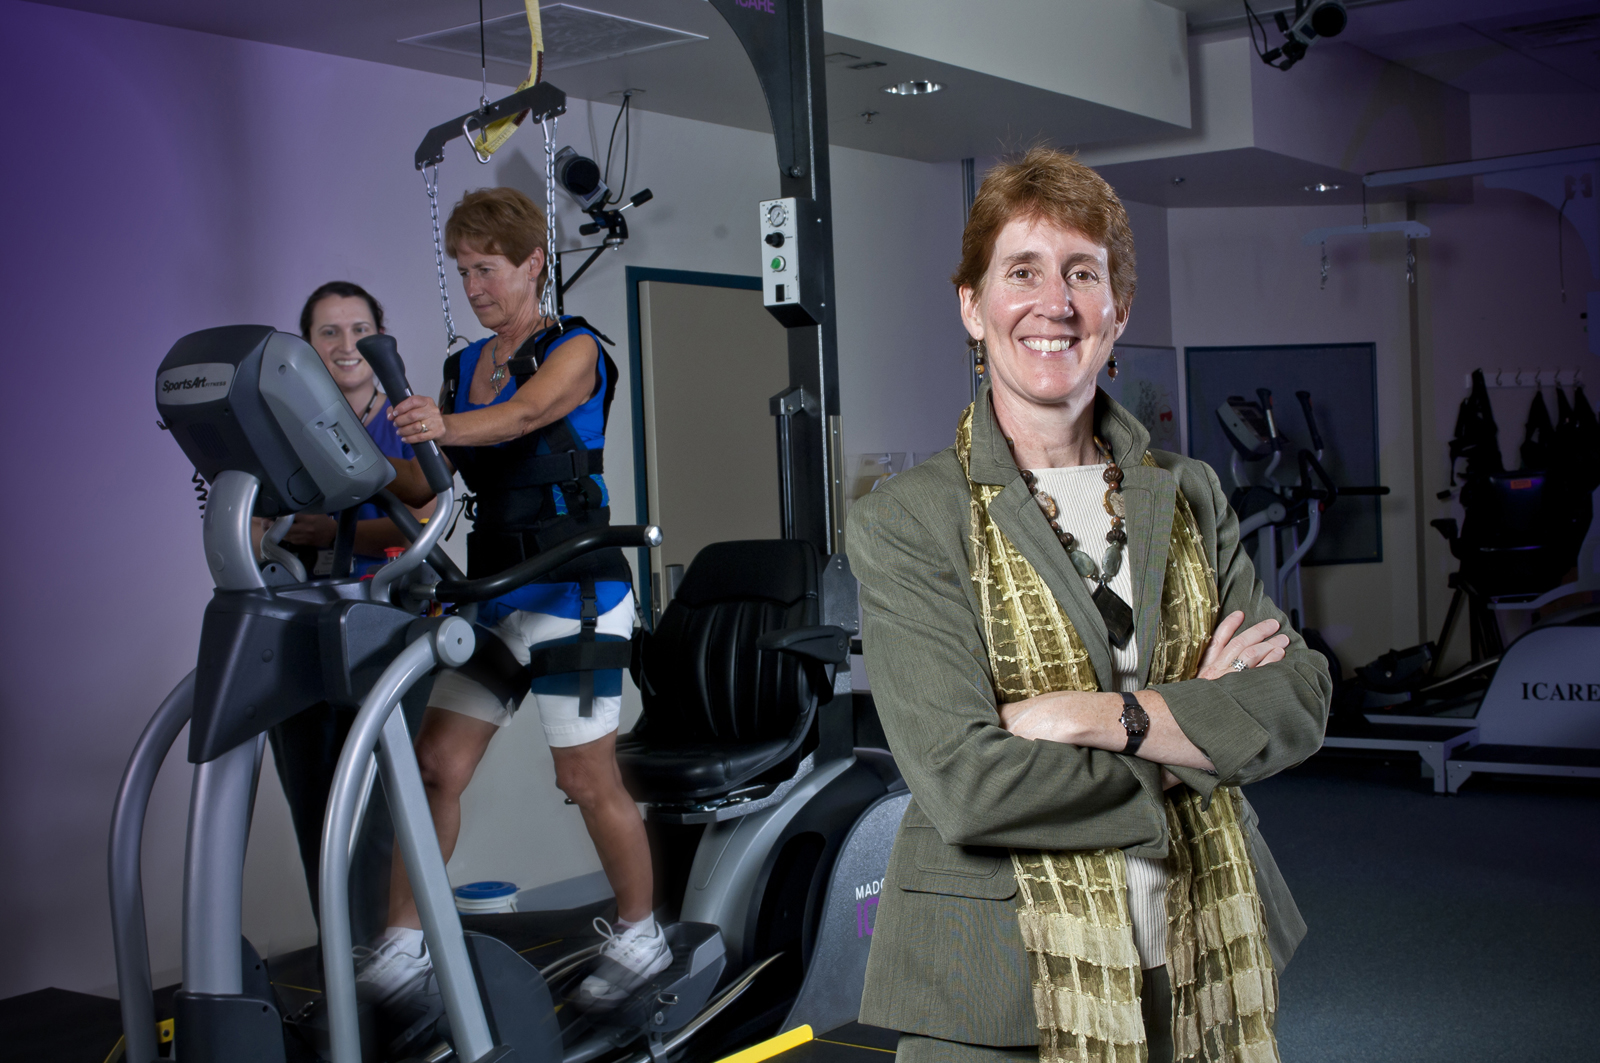 Judith Burnfield of Madonna Rehabilitation Hospital, has been named director of the Nebraska Athletics Performance Lab.